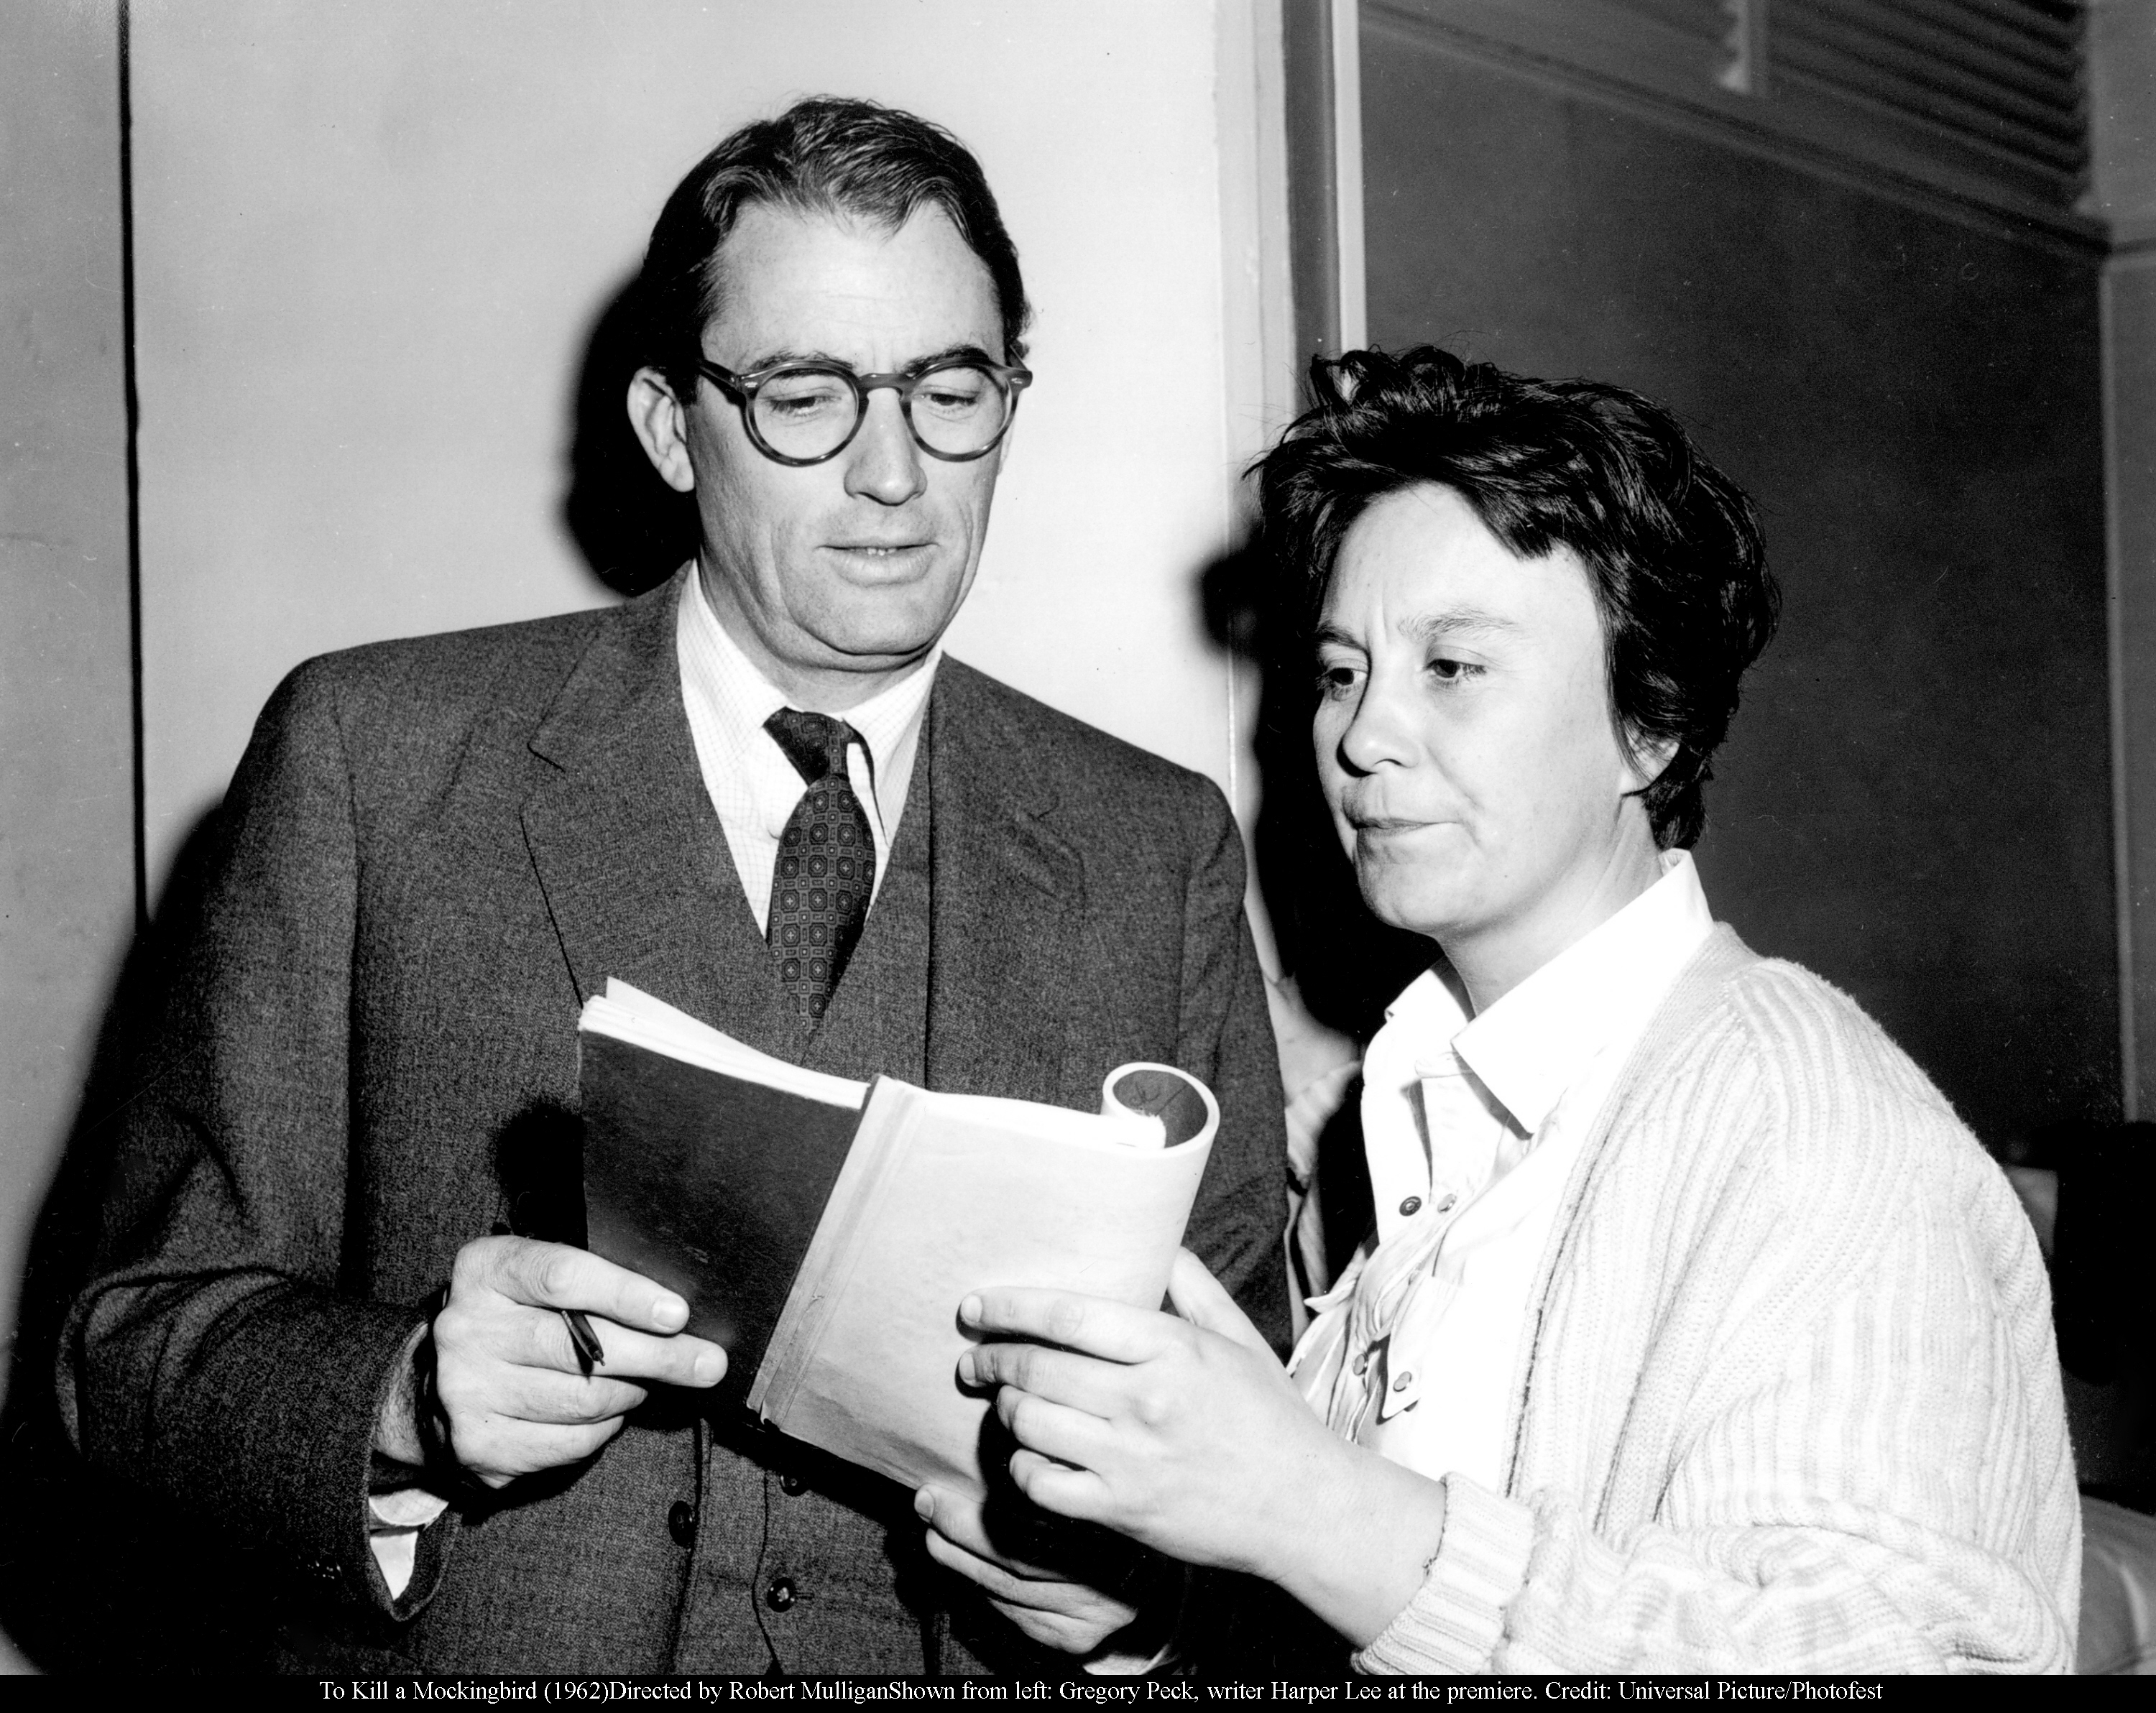 harper lee american masters press release pressroom  to kill a mockingbird 1962 directed by robert mulliganshown from left gregory peck